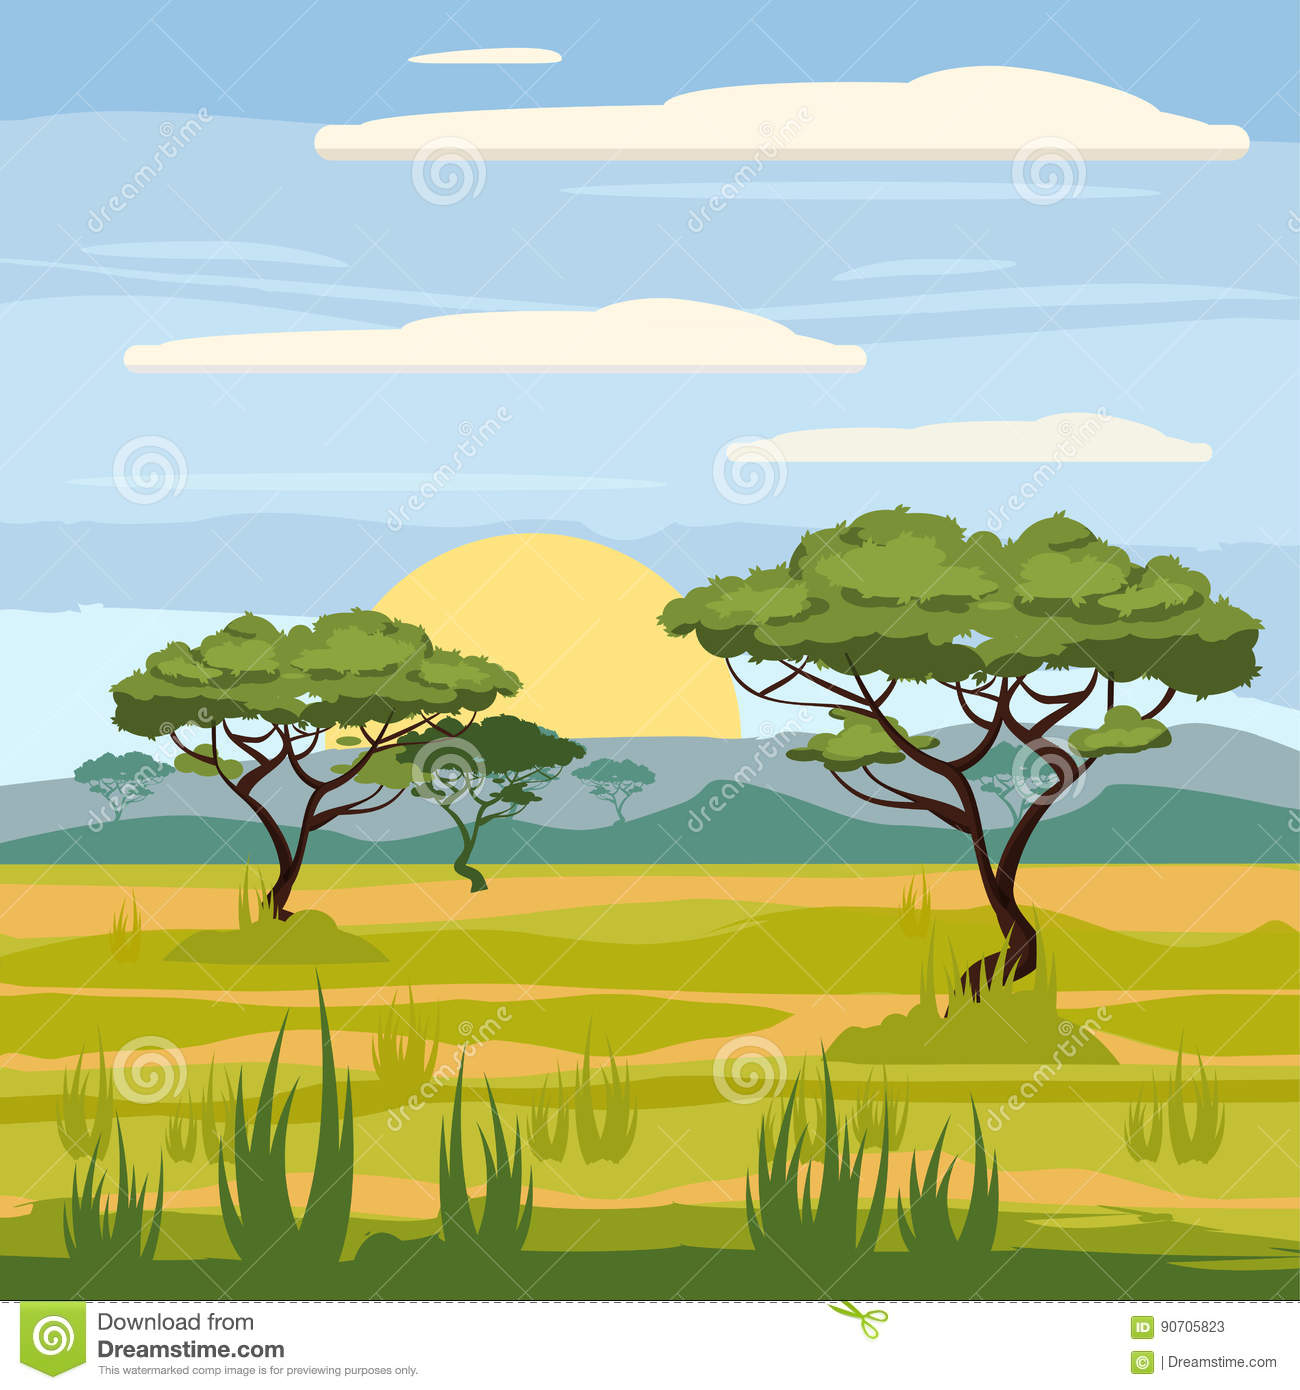 African Landscape, Savannah, Nature, Trees, Wilderness